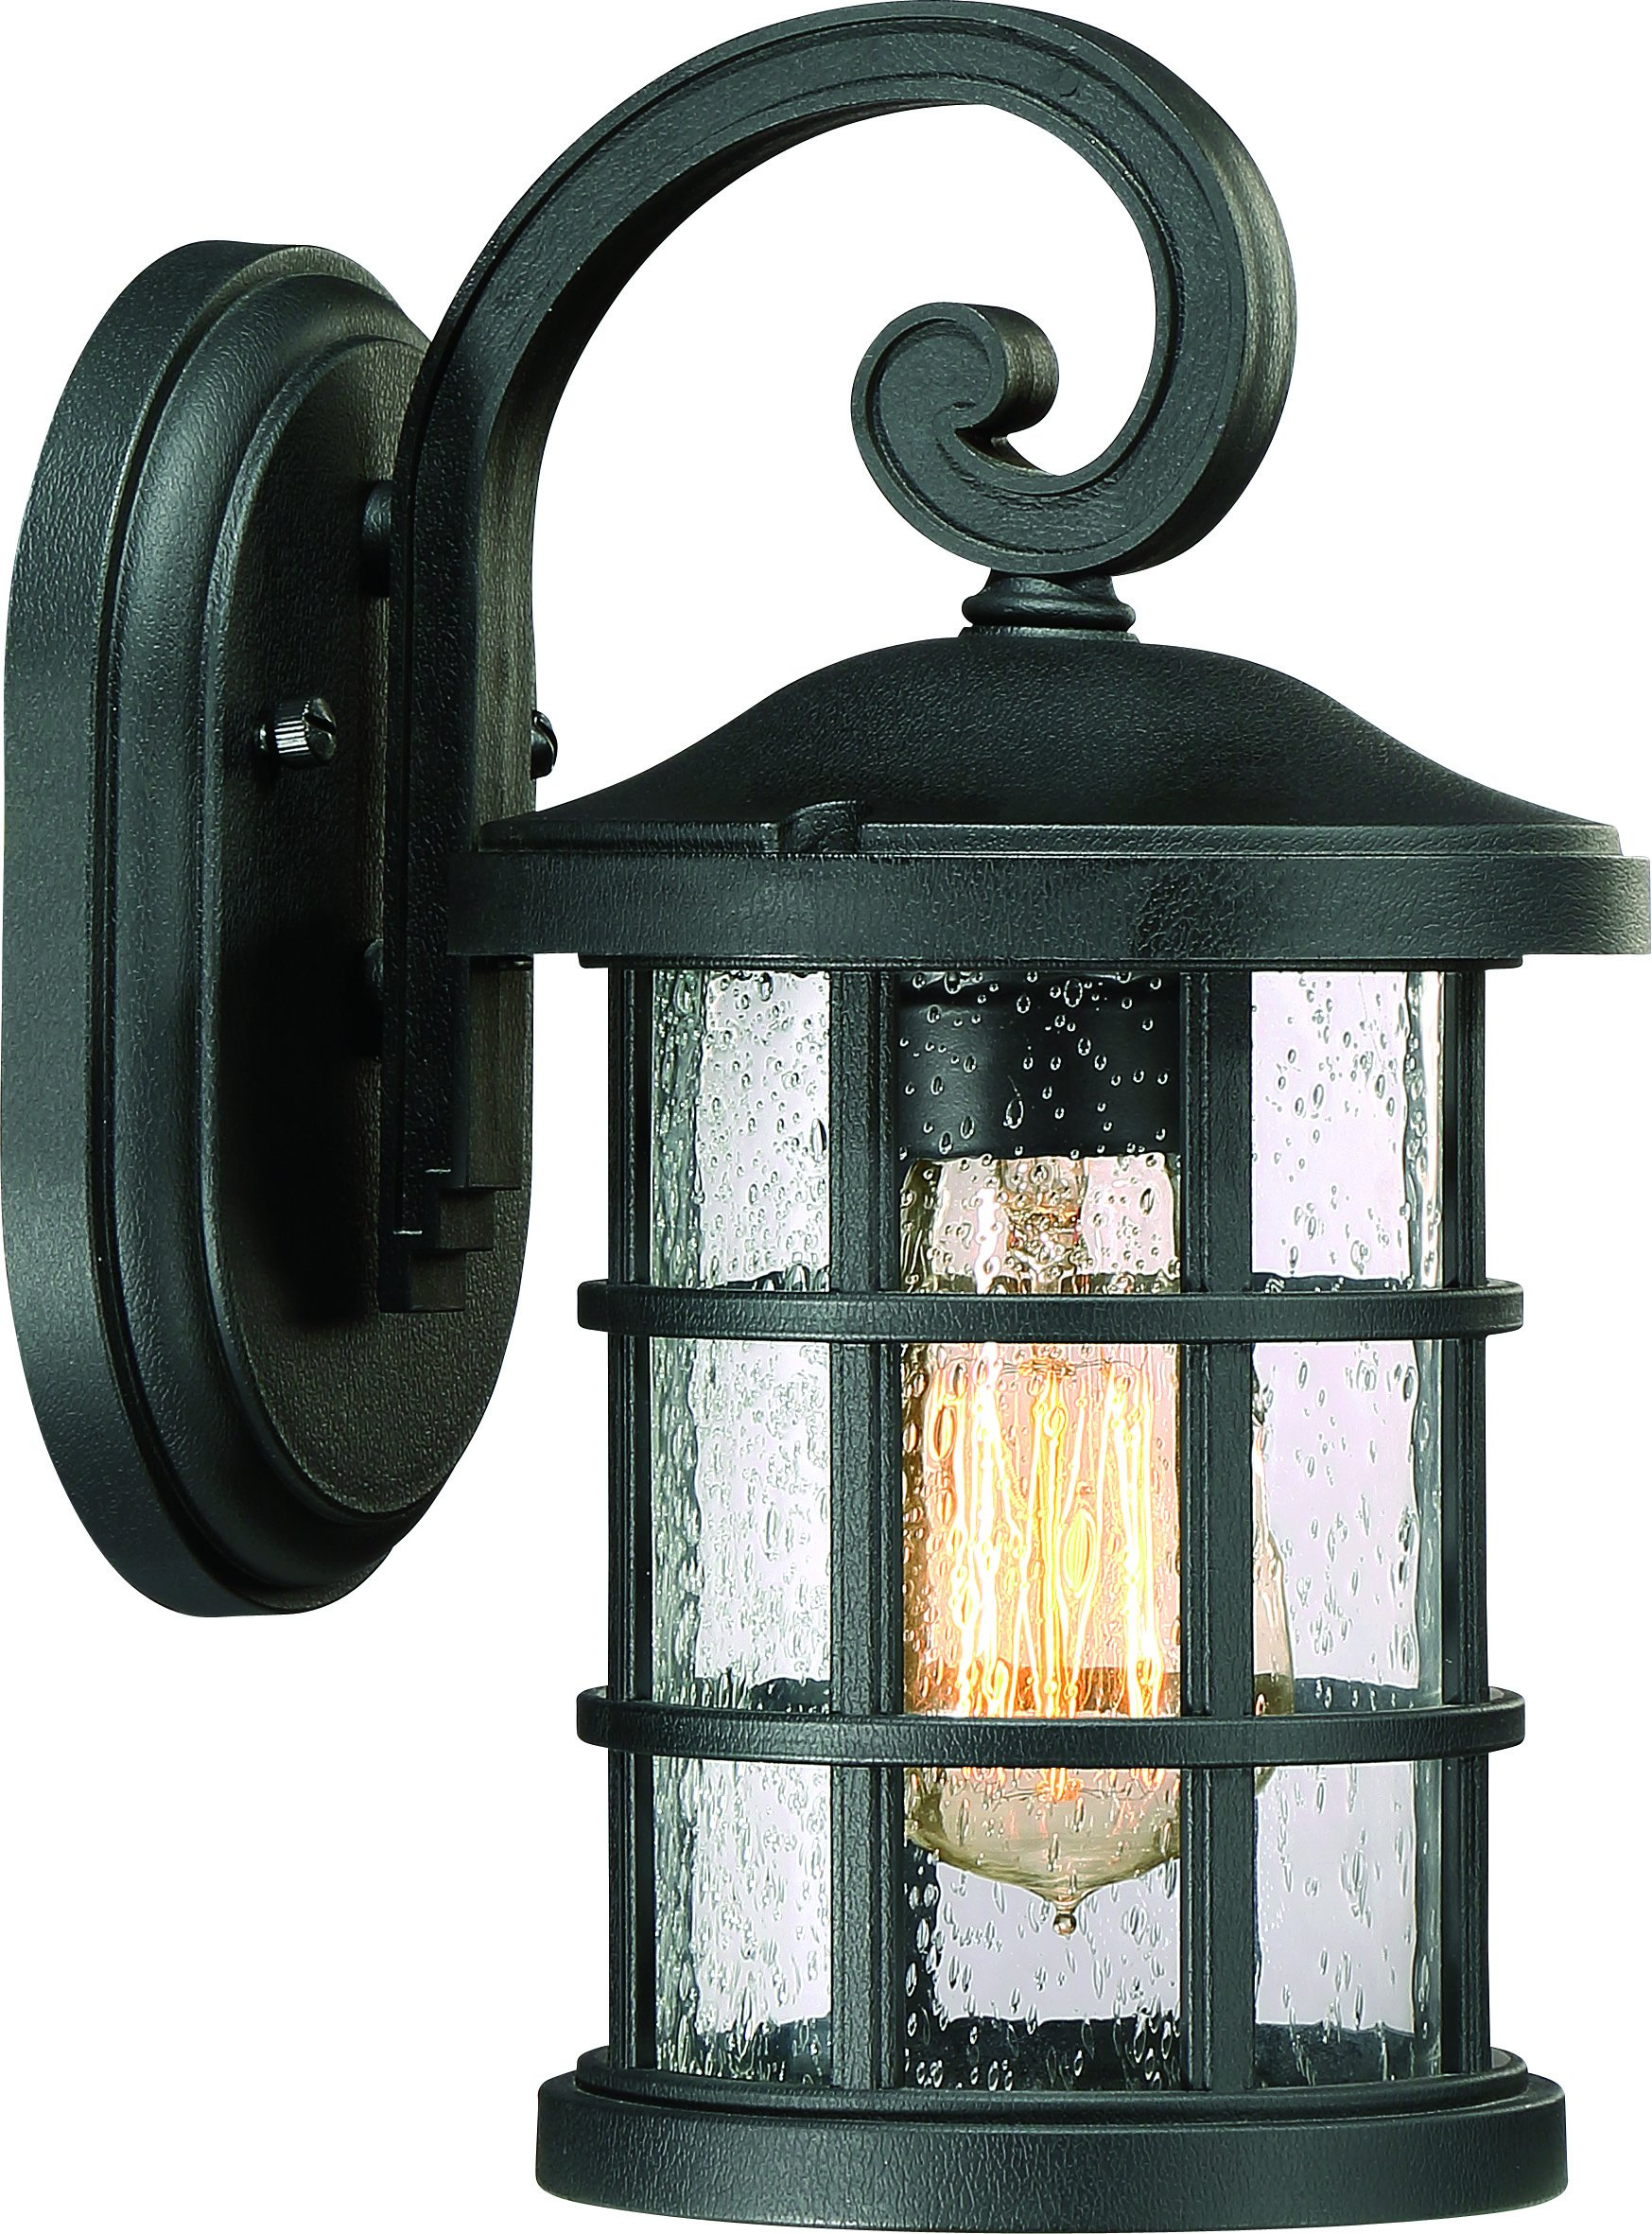 Luxury Craftsman Outdoor Wall Light, Small Size: 11'' H x 6'' W, with English Tudor Style Elements, Wrought Iron Design, Natural Black Finish and Seeded Glass, UQL1040 by Urban Ambiance